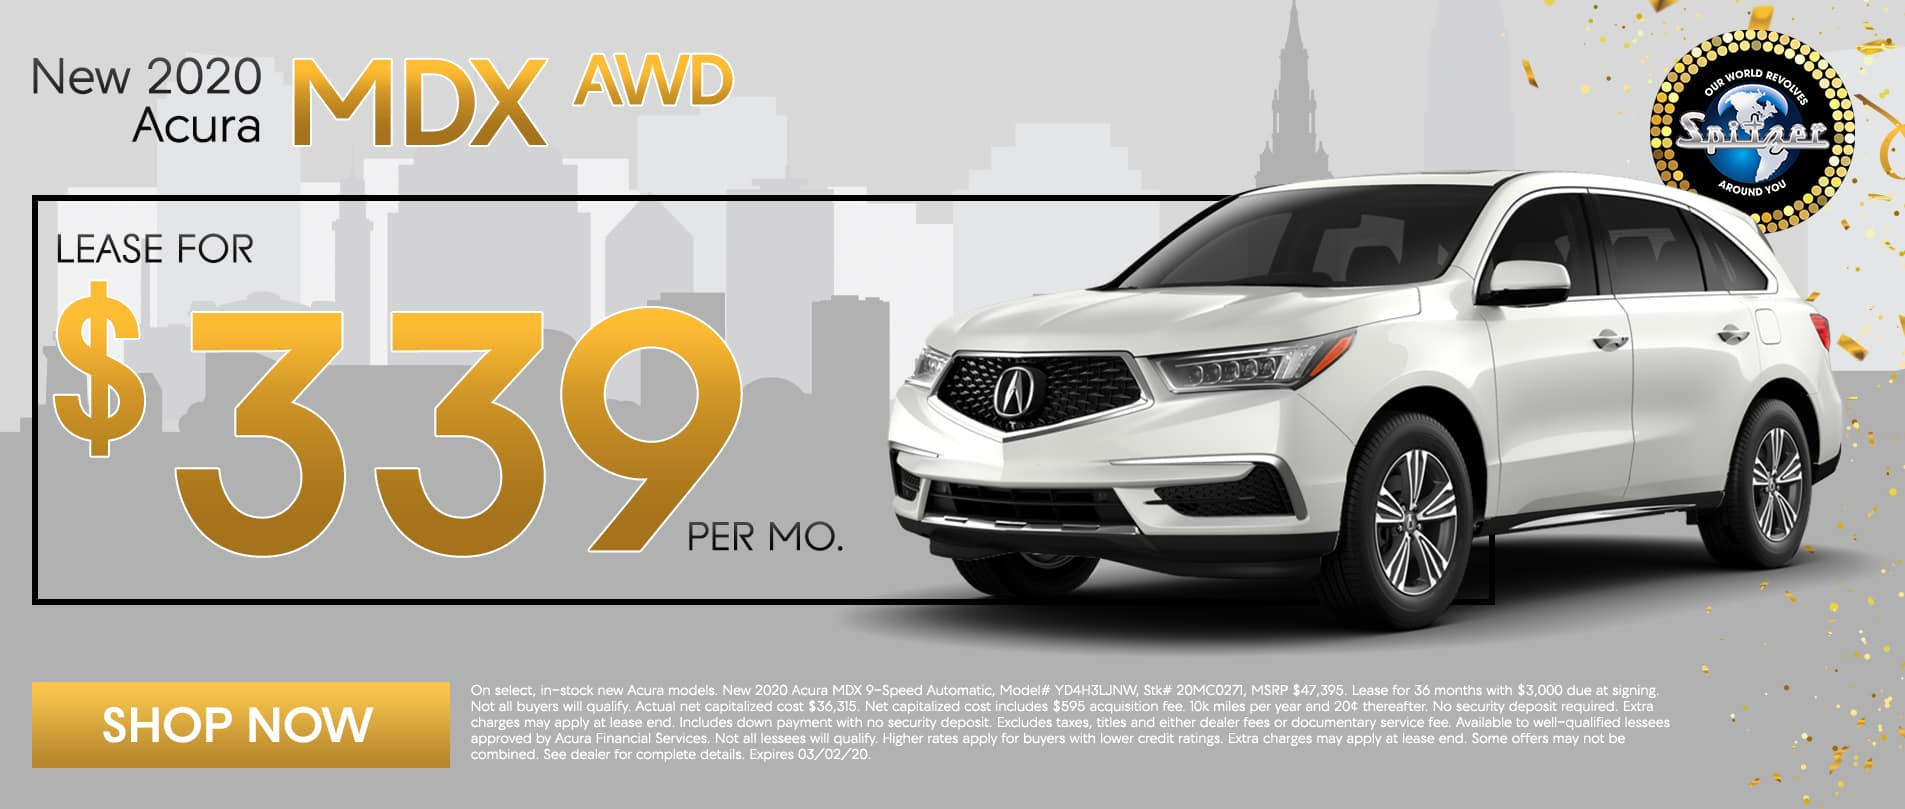 MDX | Lease for $339 per mo